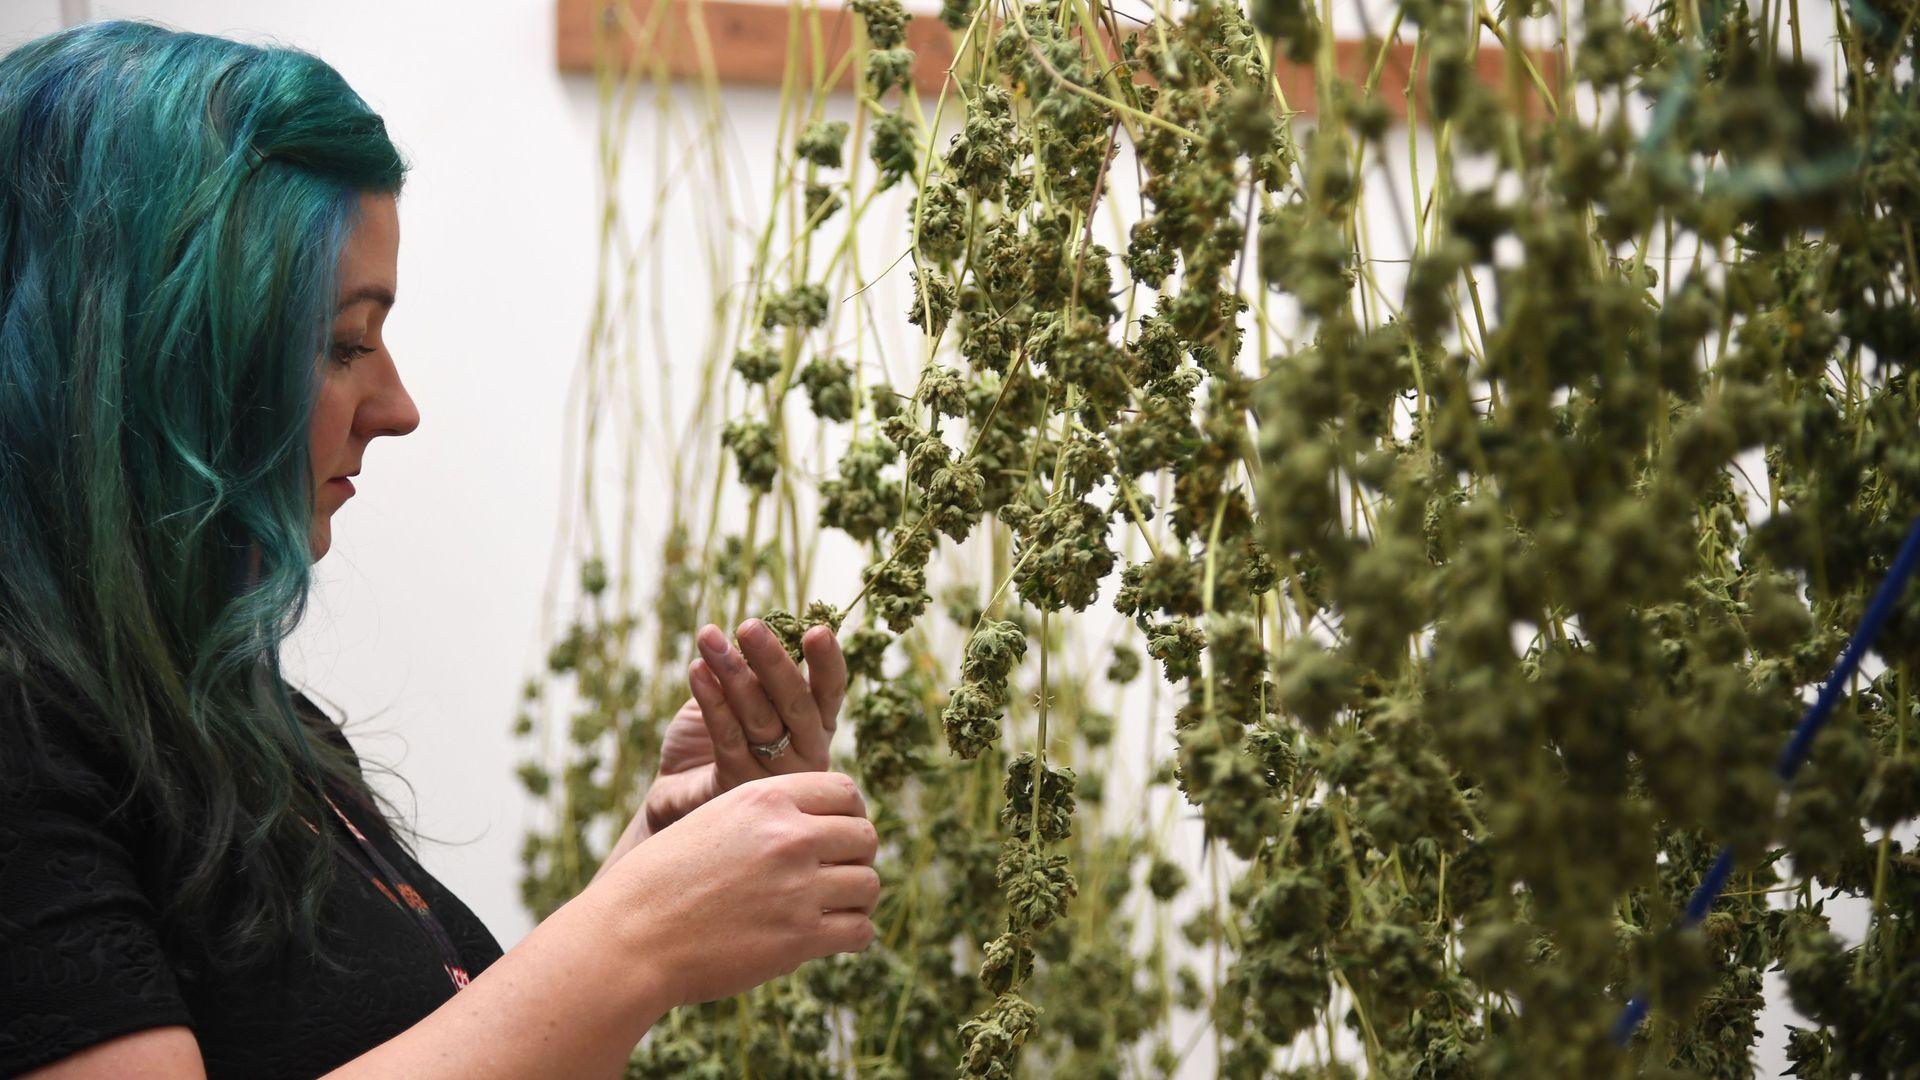 Green Pearl Organics dispensary owner Nicole Salisbury inspects drying marijuana.